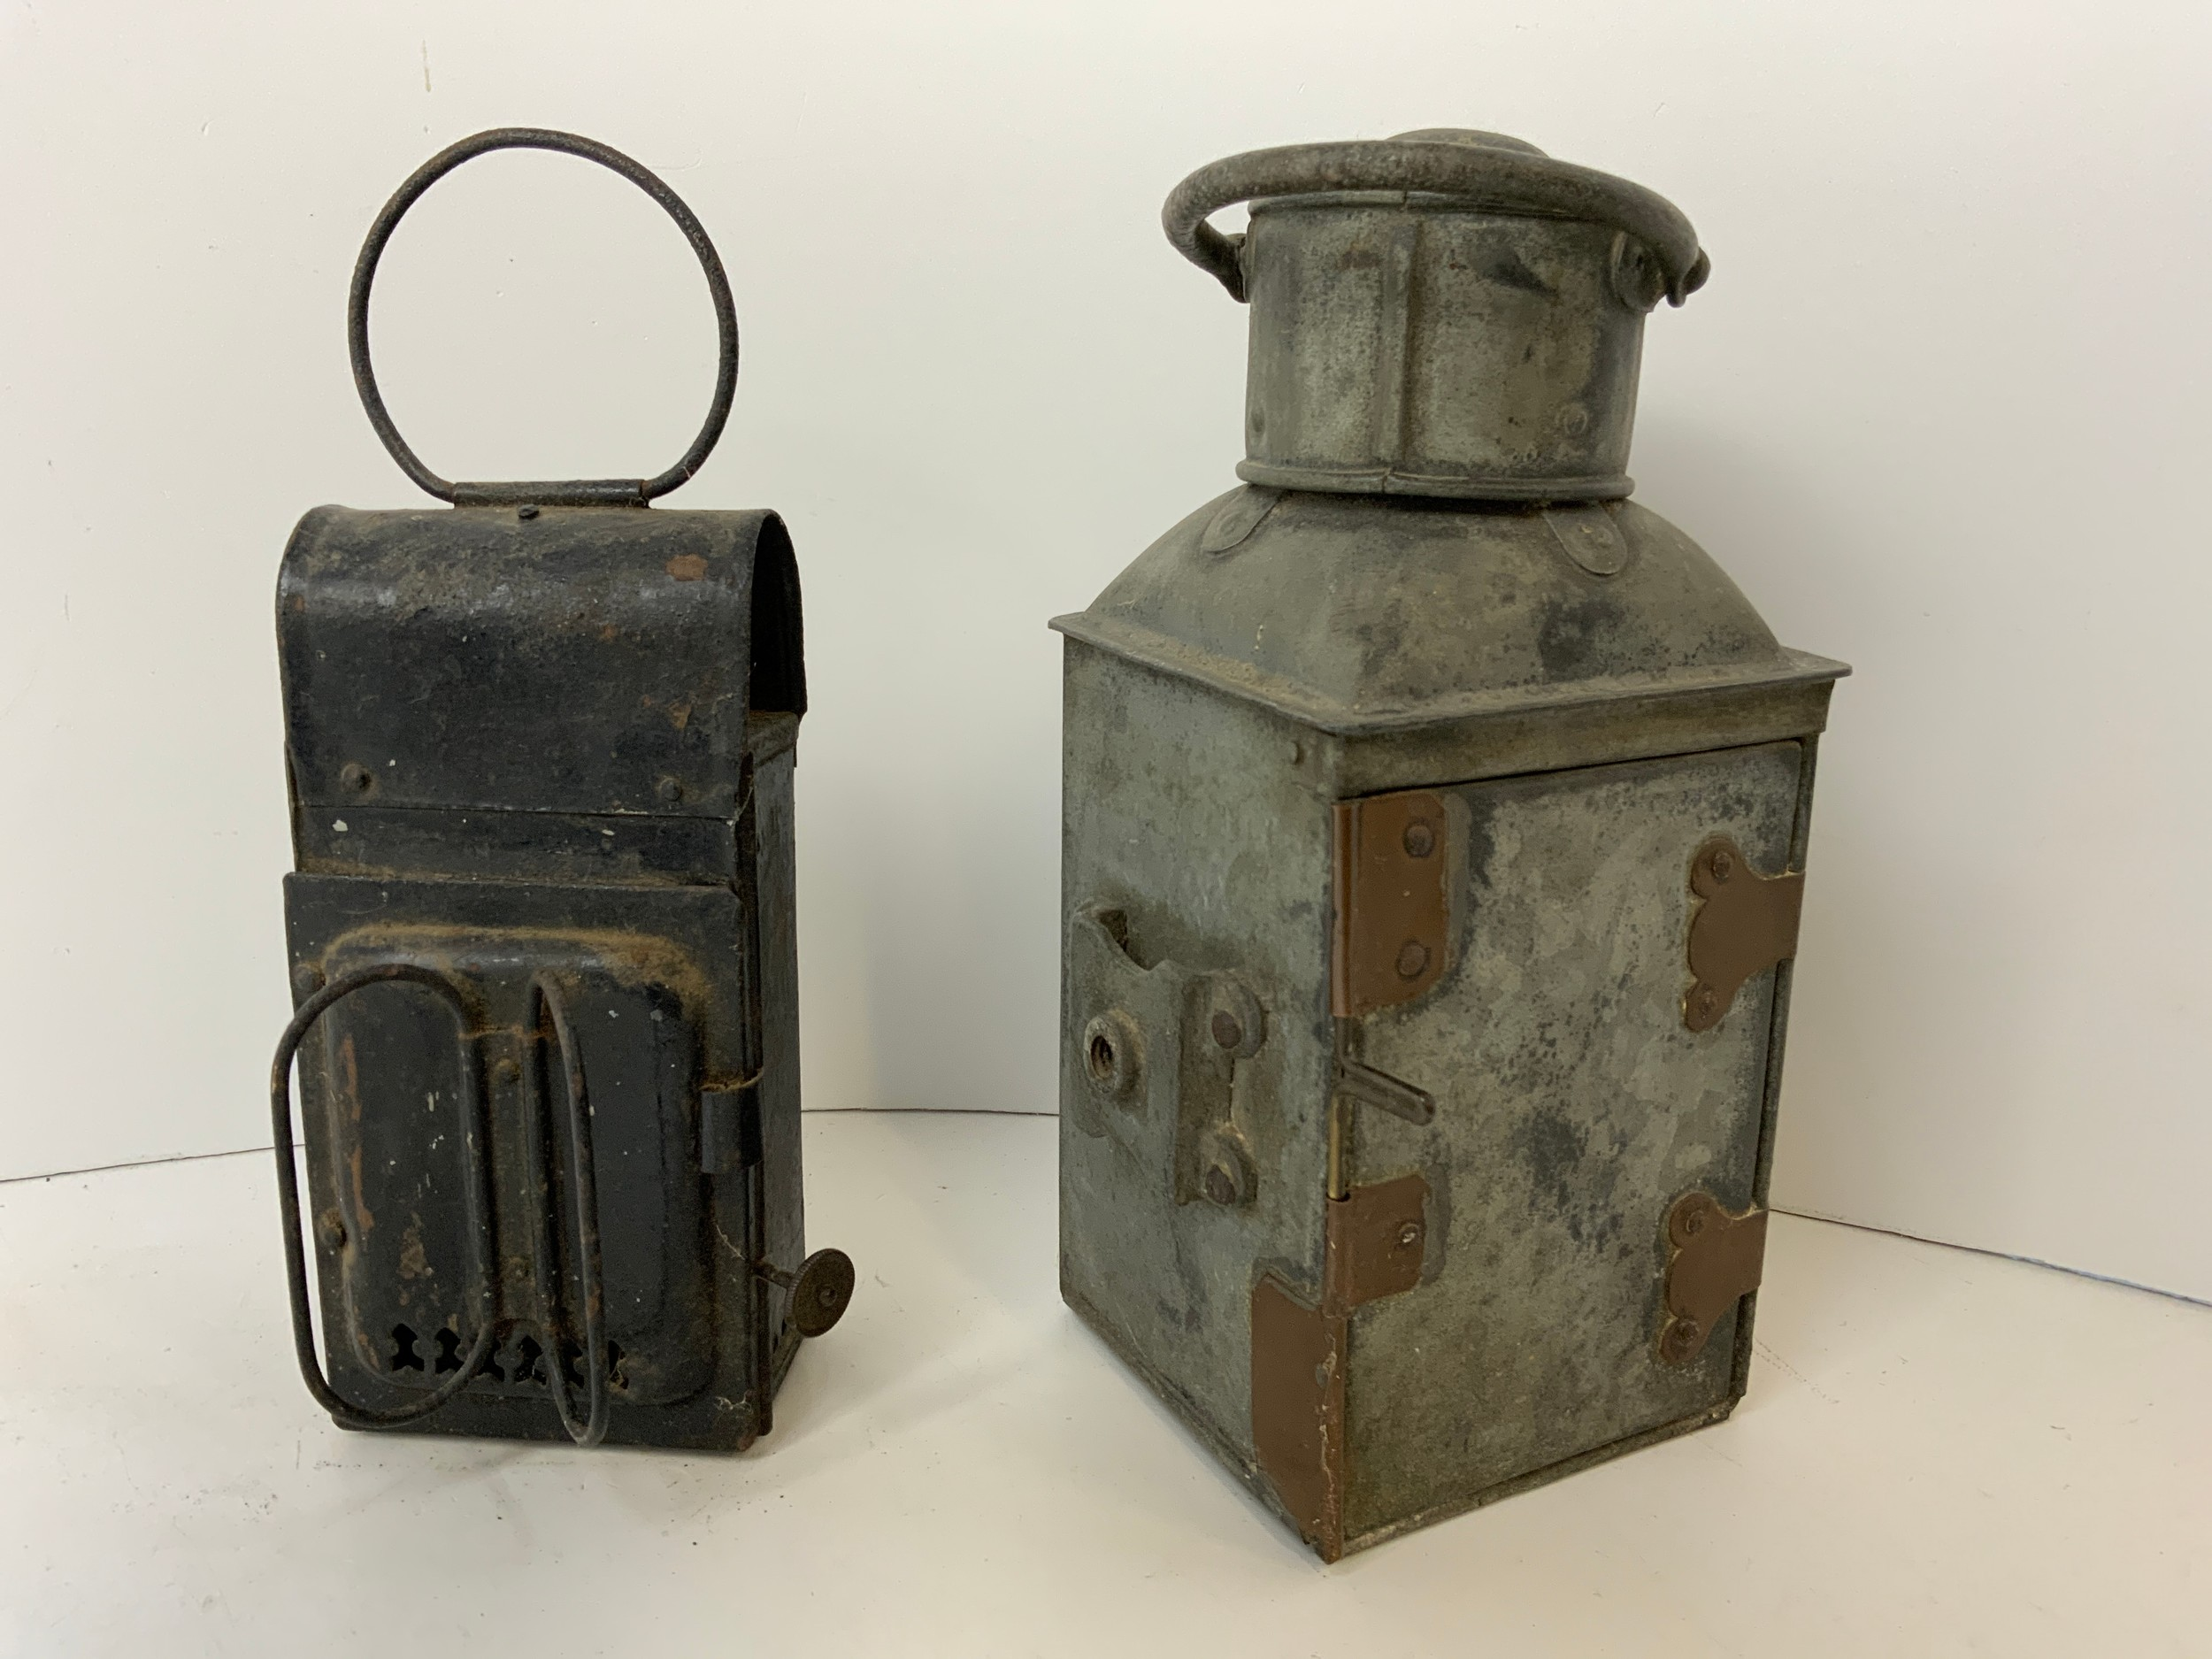 2x Oil Lanterns - One Ships - Image 3 of 3